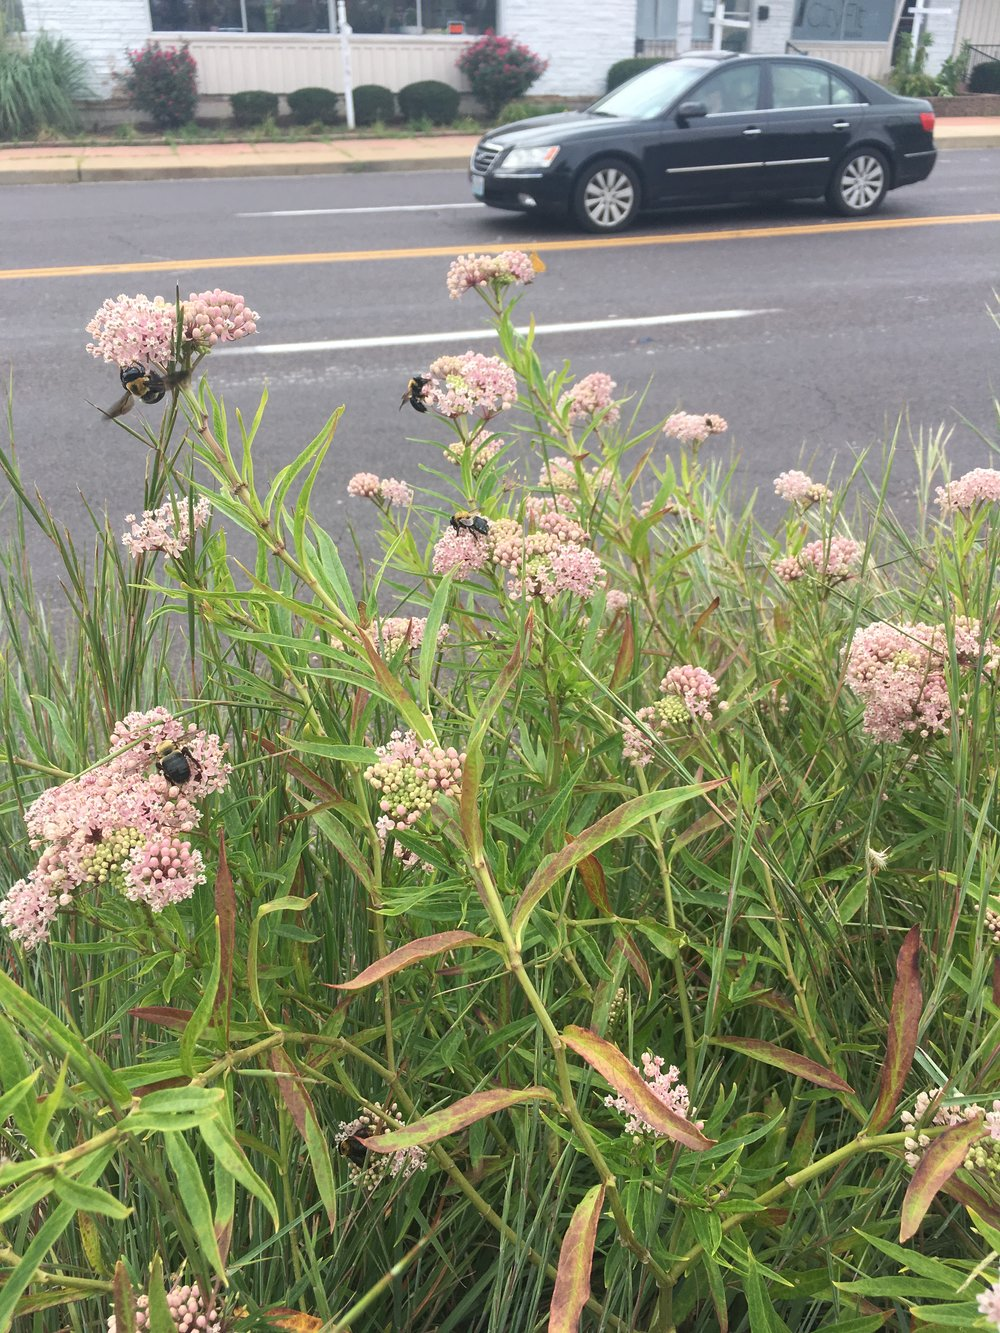 Native Carpenter Bees on Swamp Milkweed (Asclepias incarnata) at Hampton Wedge. How many can you count?!